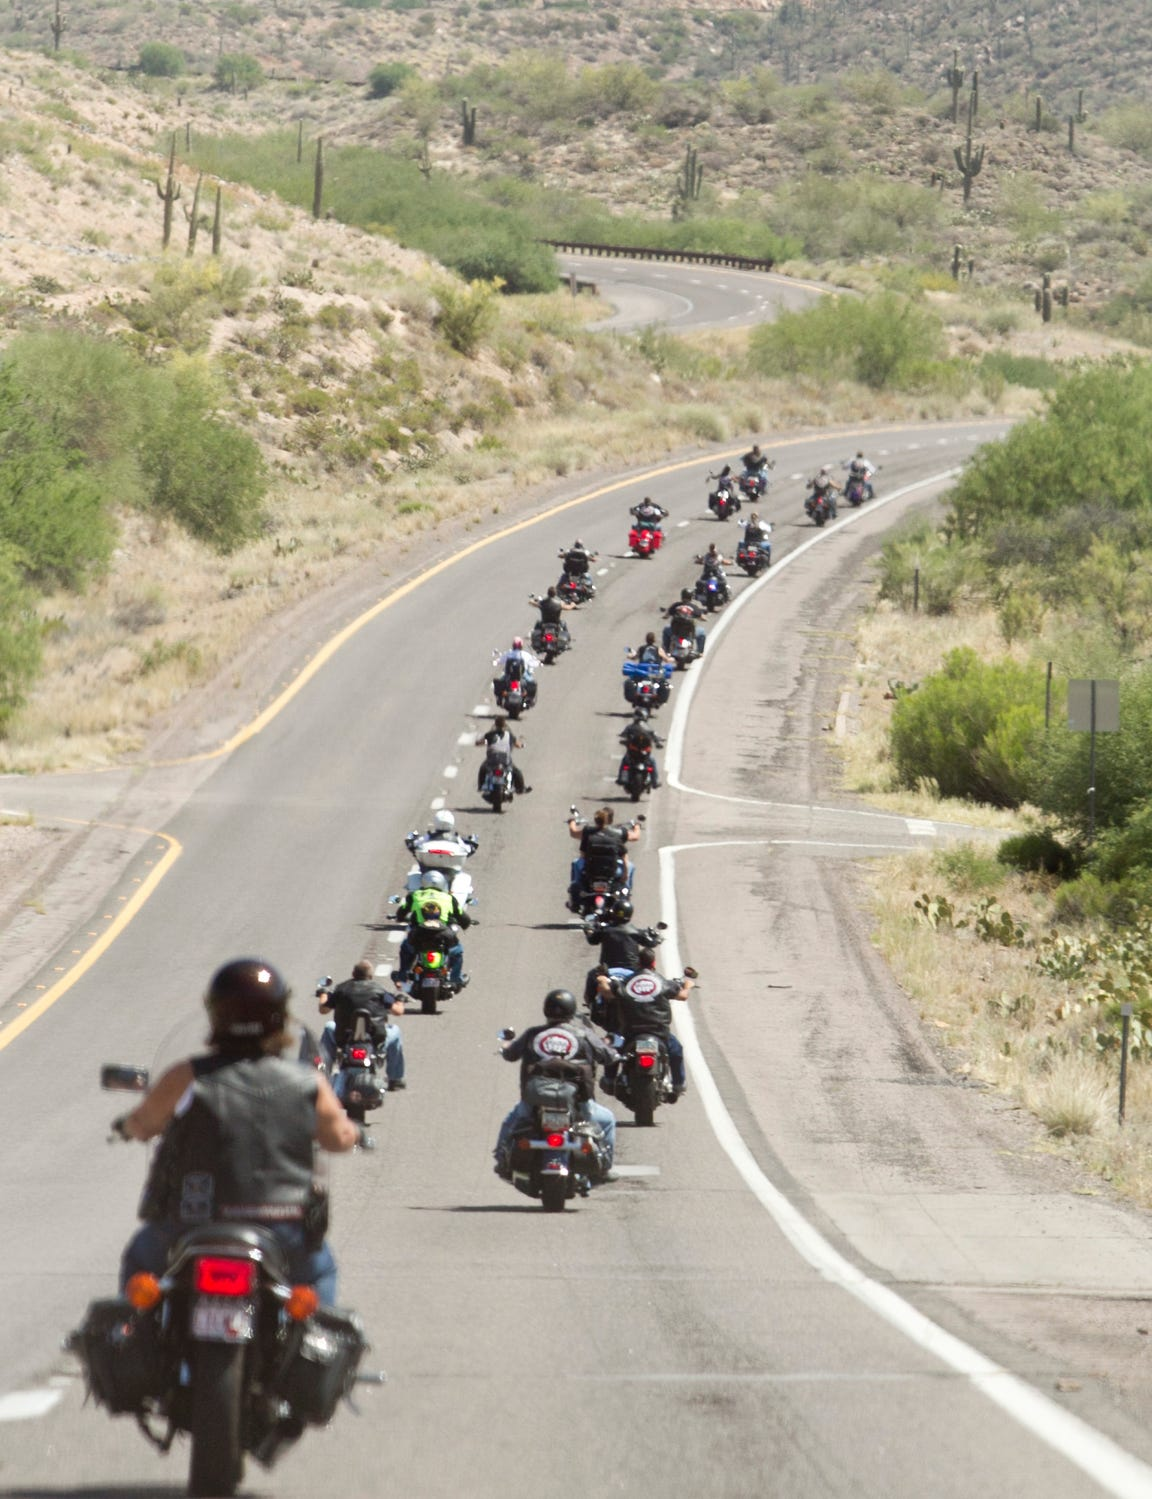 The bikers are all volunteers, giving five, 10, 20 or more hours a week. There's no reimbursement for gas or the time they take off work. They have to go through background checks and prove themselves to the group. But each has a reason for doing so.